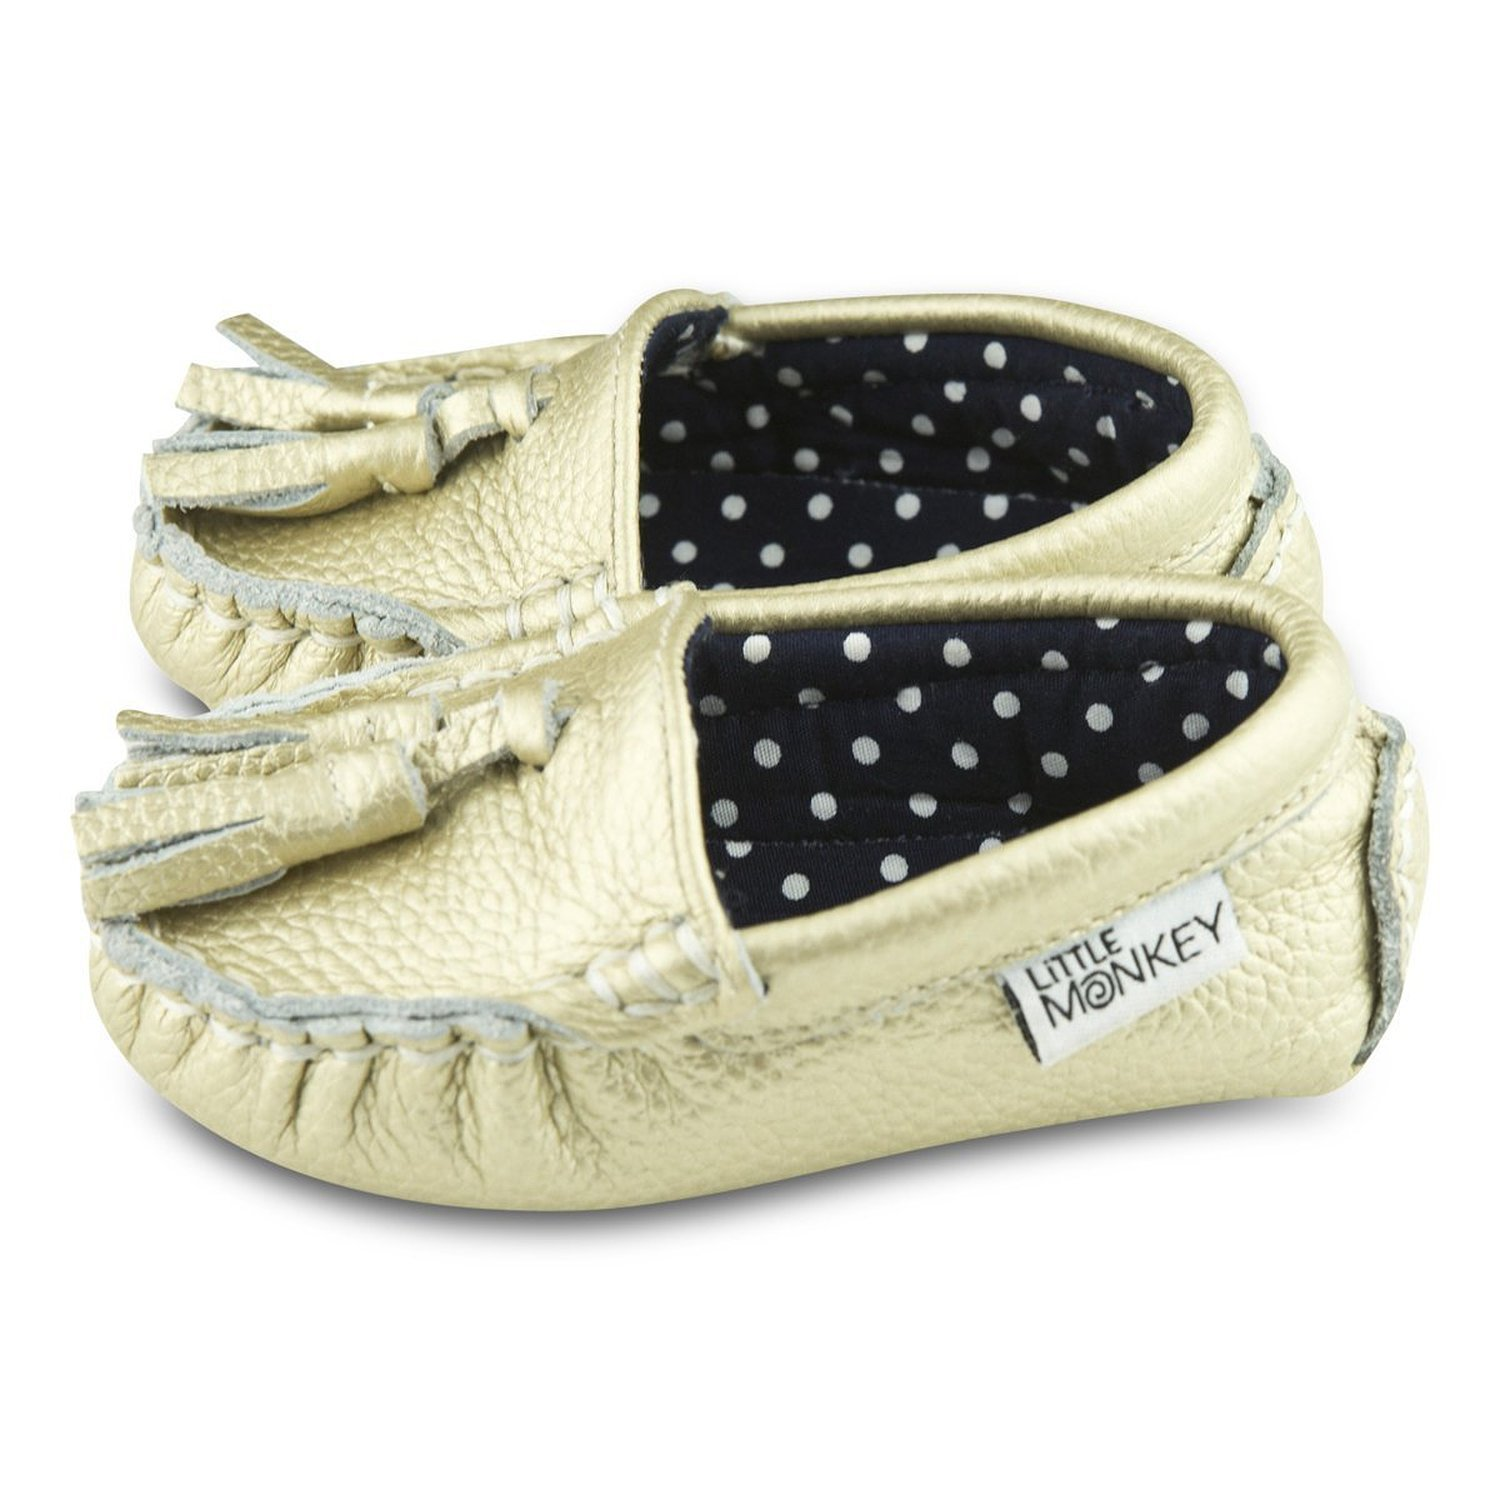 Golden Glam Baby Loafer Shoes Leather and Fabric Lined Moccasin: Amazon.ca:  Shoes & Handbags